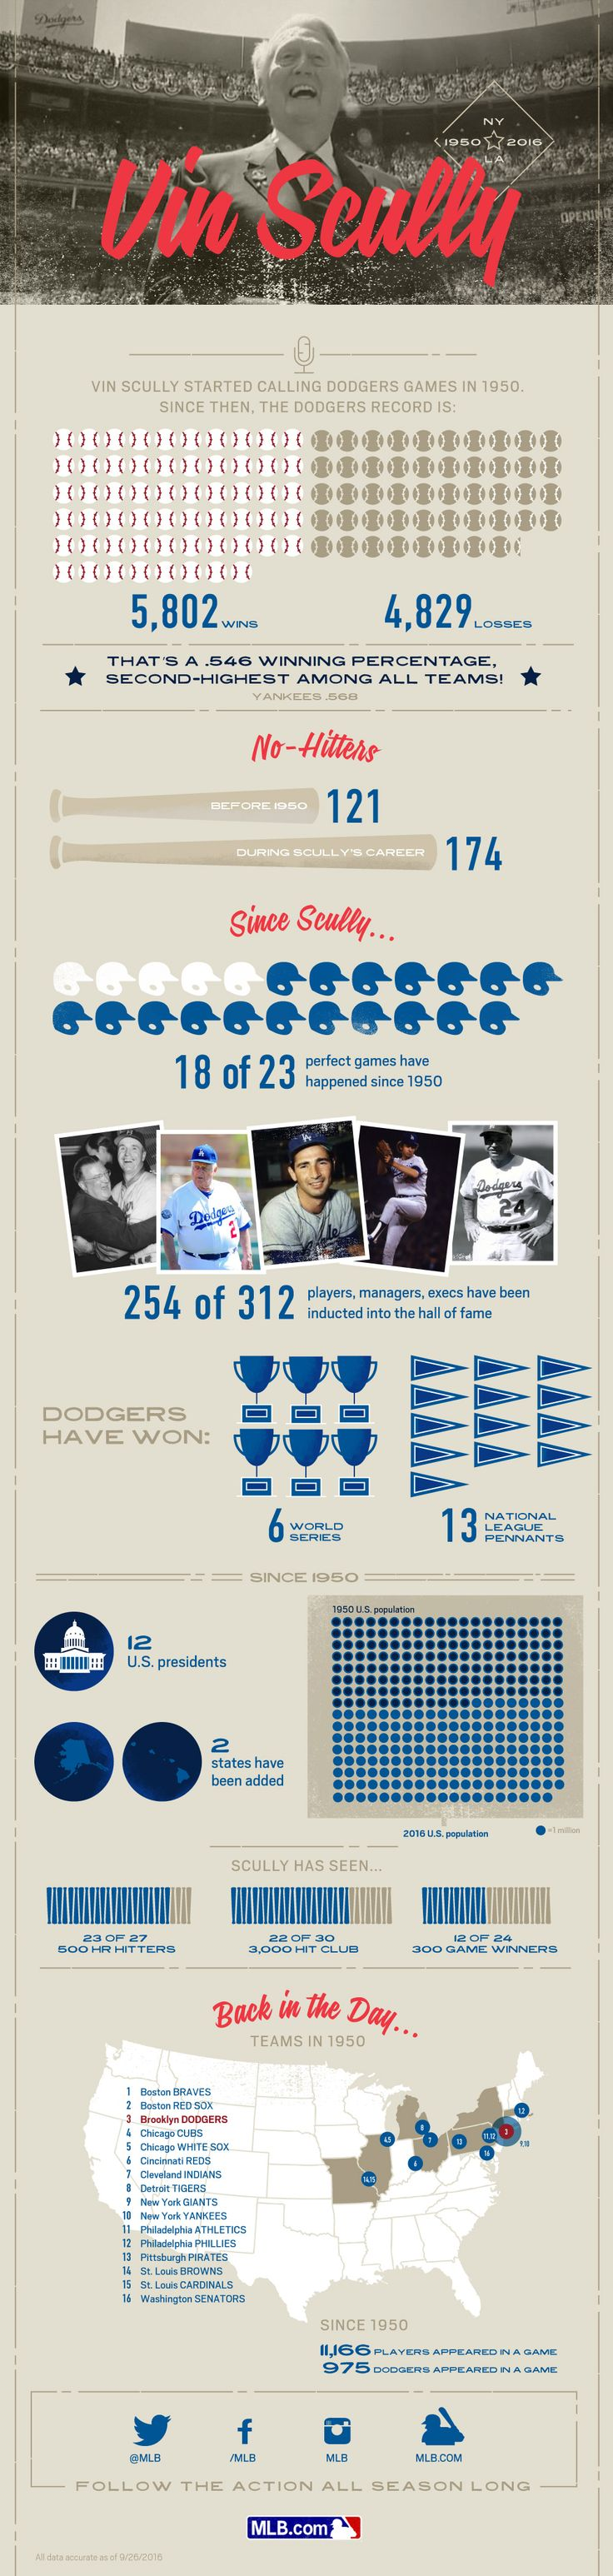 Graphic showing some of the stats since Vin Scully started calling games in 1950. From Cut4 on mlb.com, Oct 2, 2016 #dodgers #vinscully #baseball #history